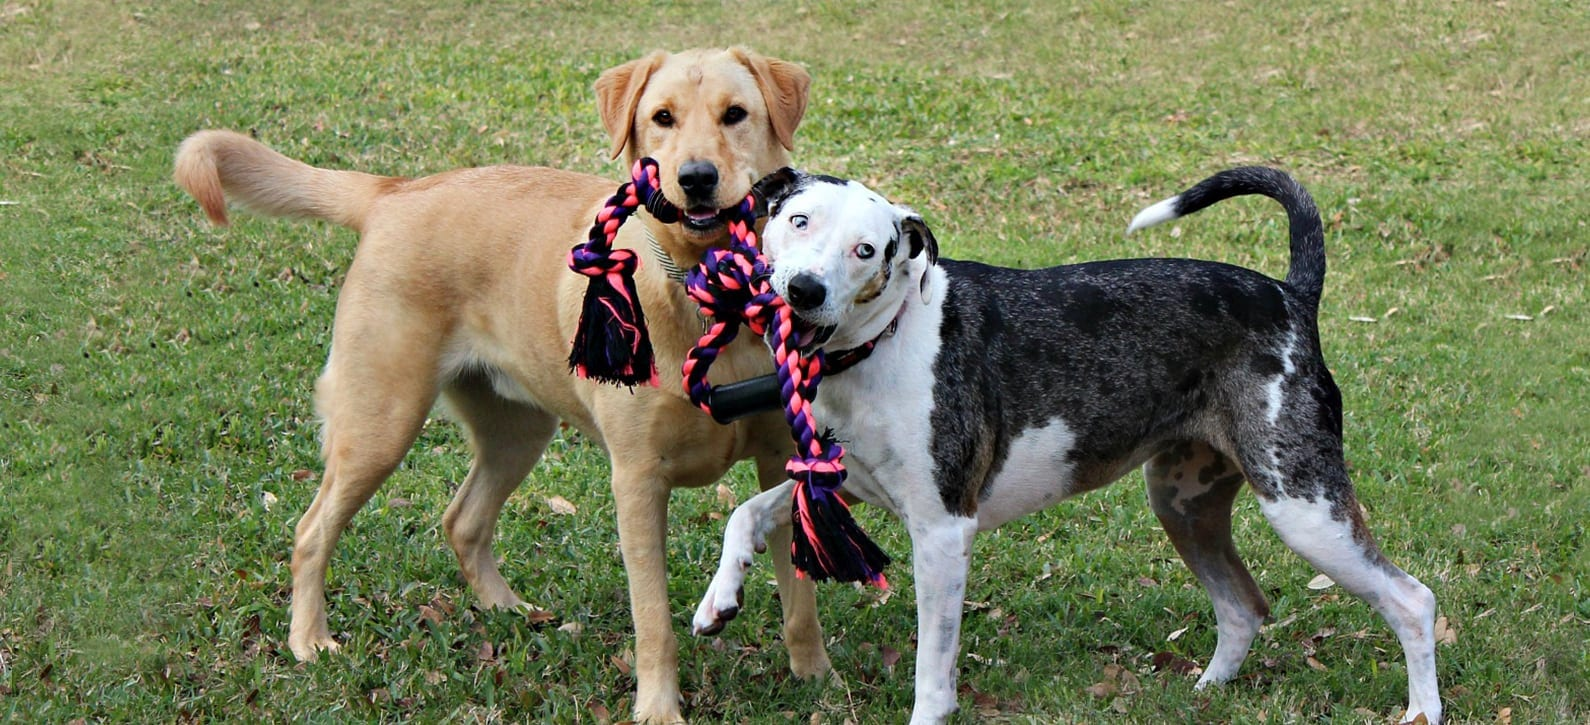 two dogs playing tug a war with rope toy: Animal Hospital in Belton